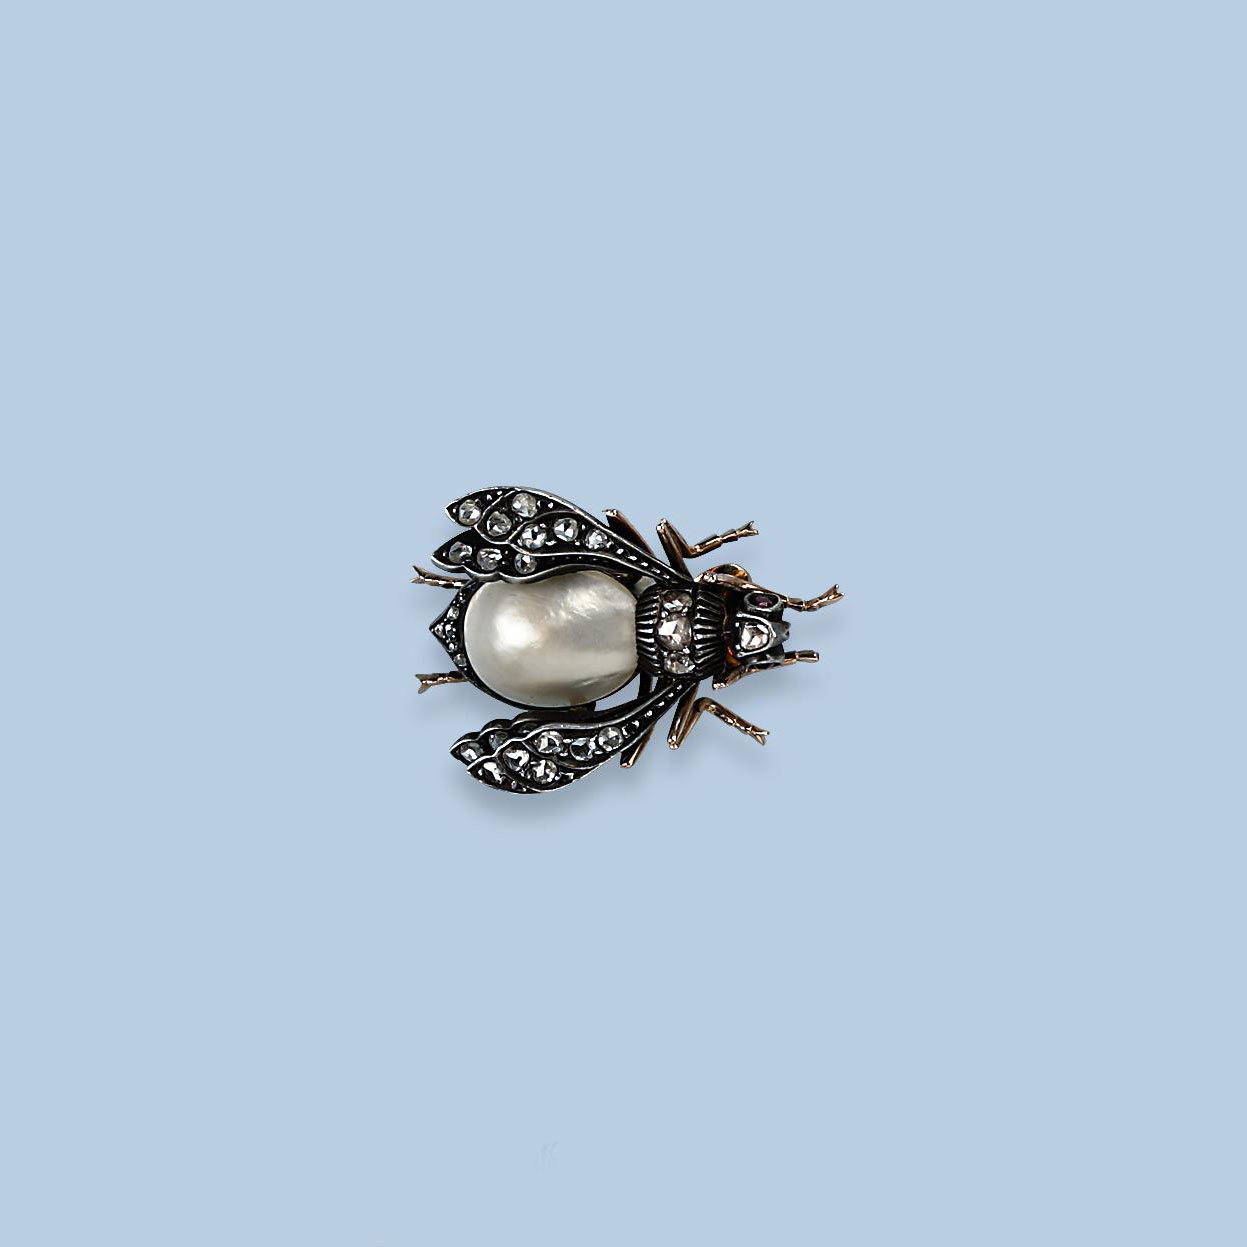 AN ANTIQUE DIAMOND INSECT PEND